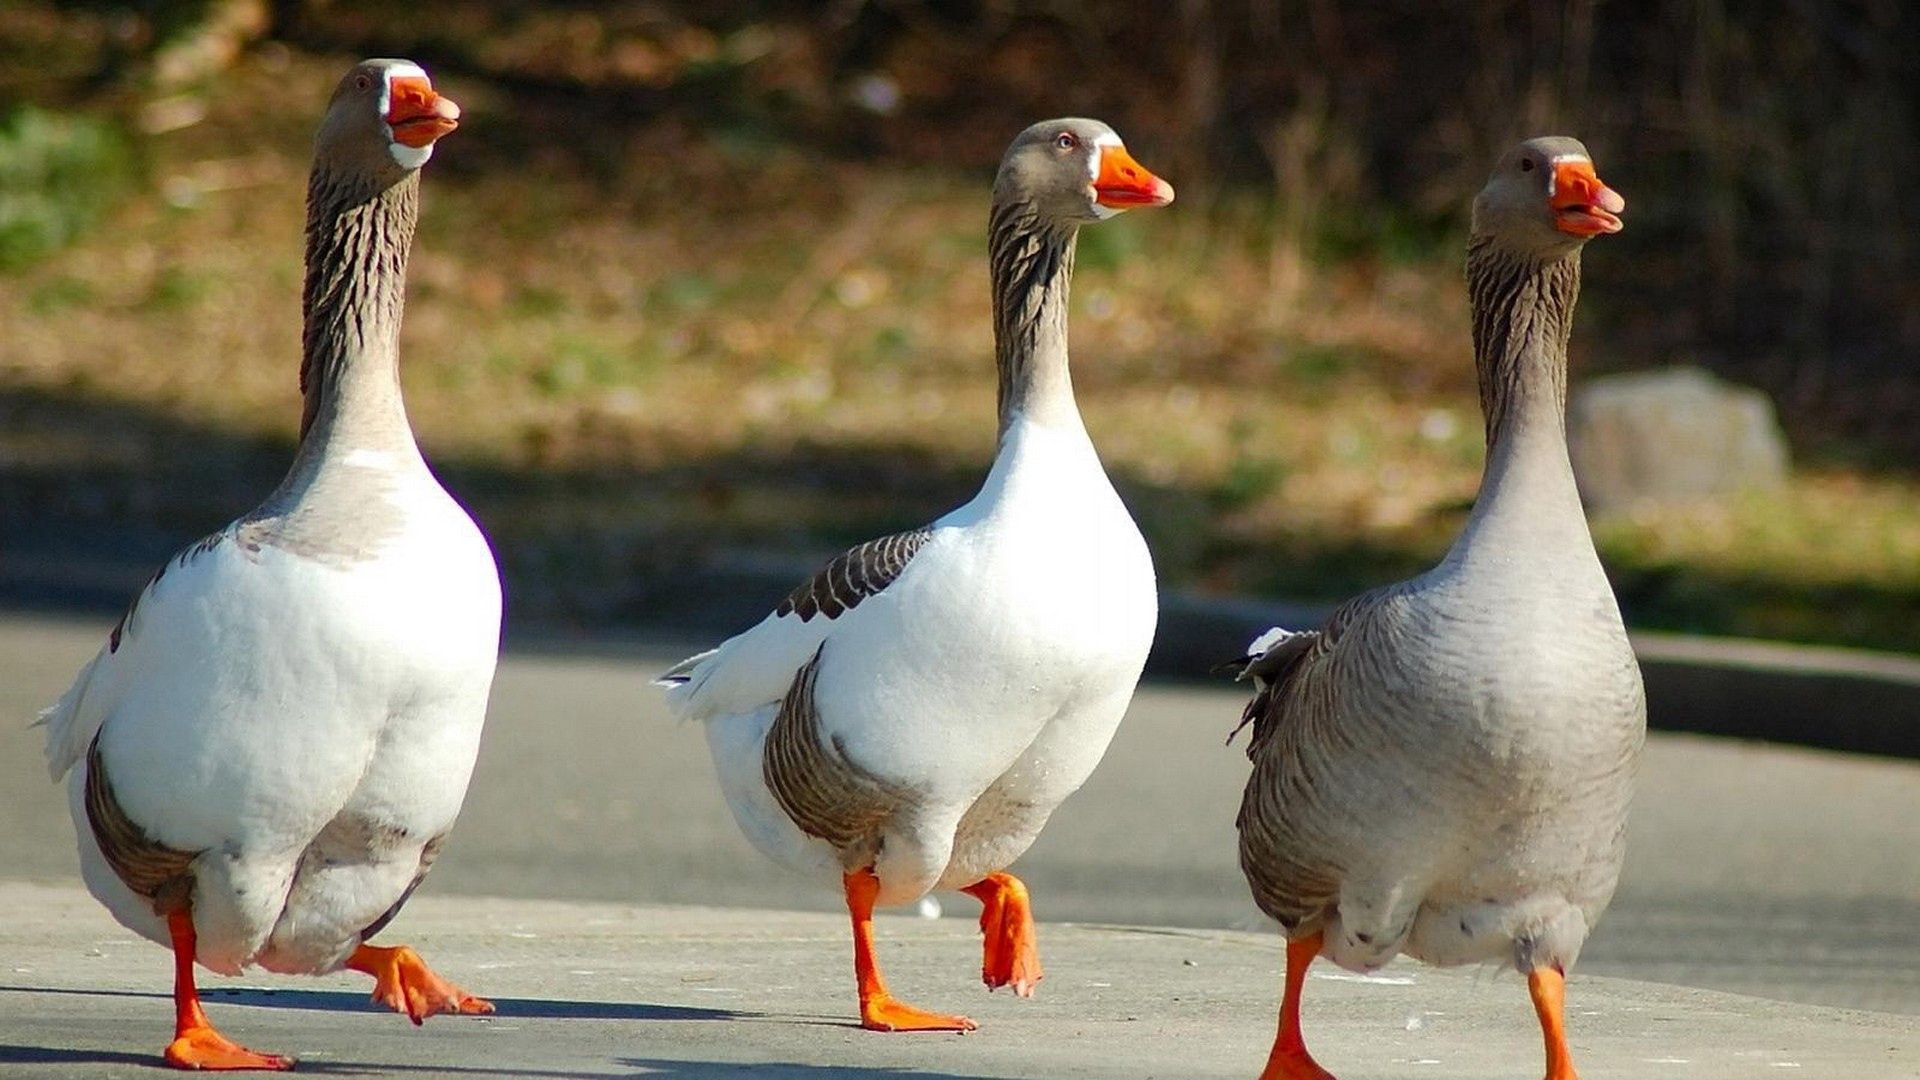 76047 download wallpaper Animals, Geese, Stroll, Three, Wings, Birds screensavers and pictures for free